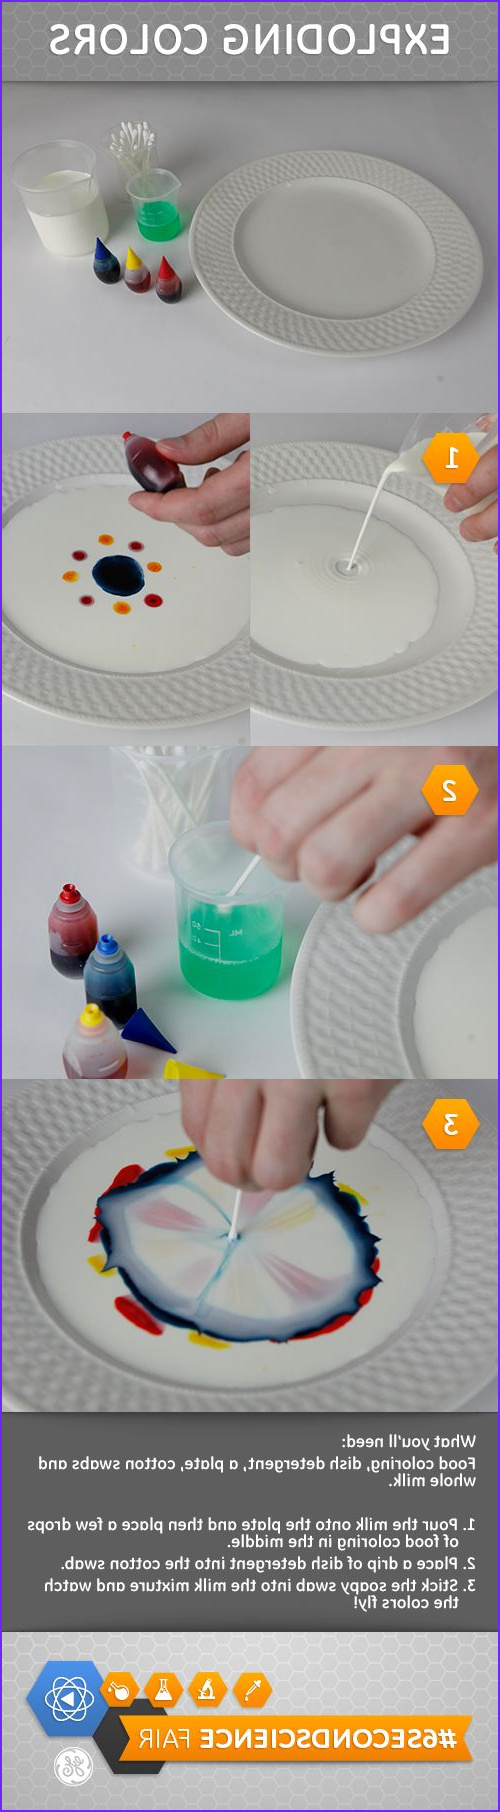 Food Coloring Science Projects Unique Image What Happens when You Bine Milk Food Coloring and